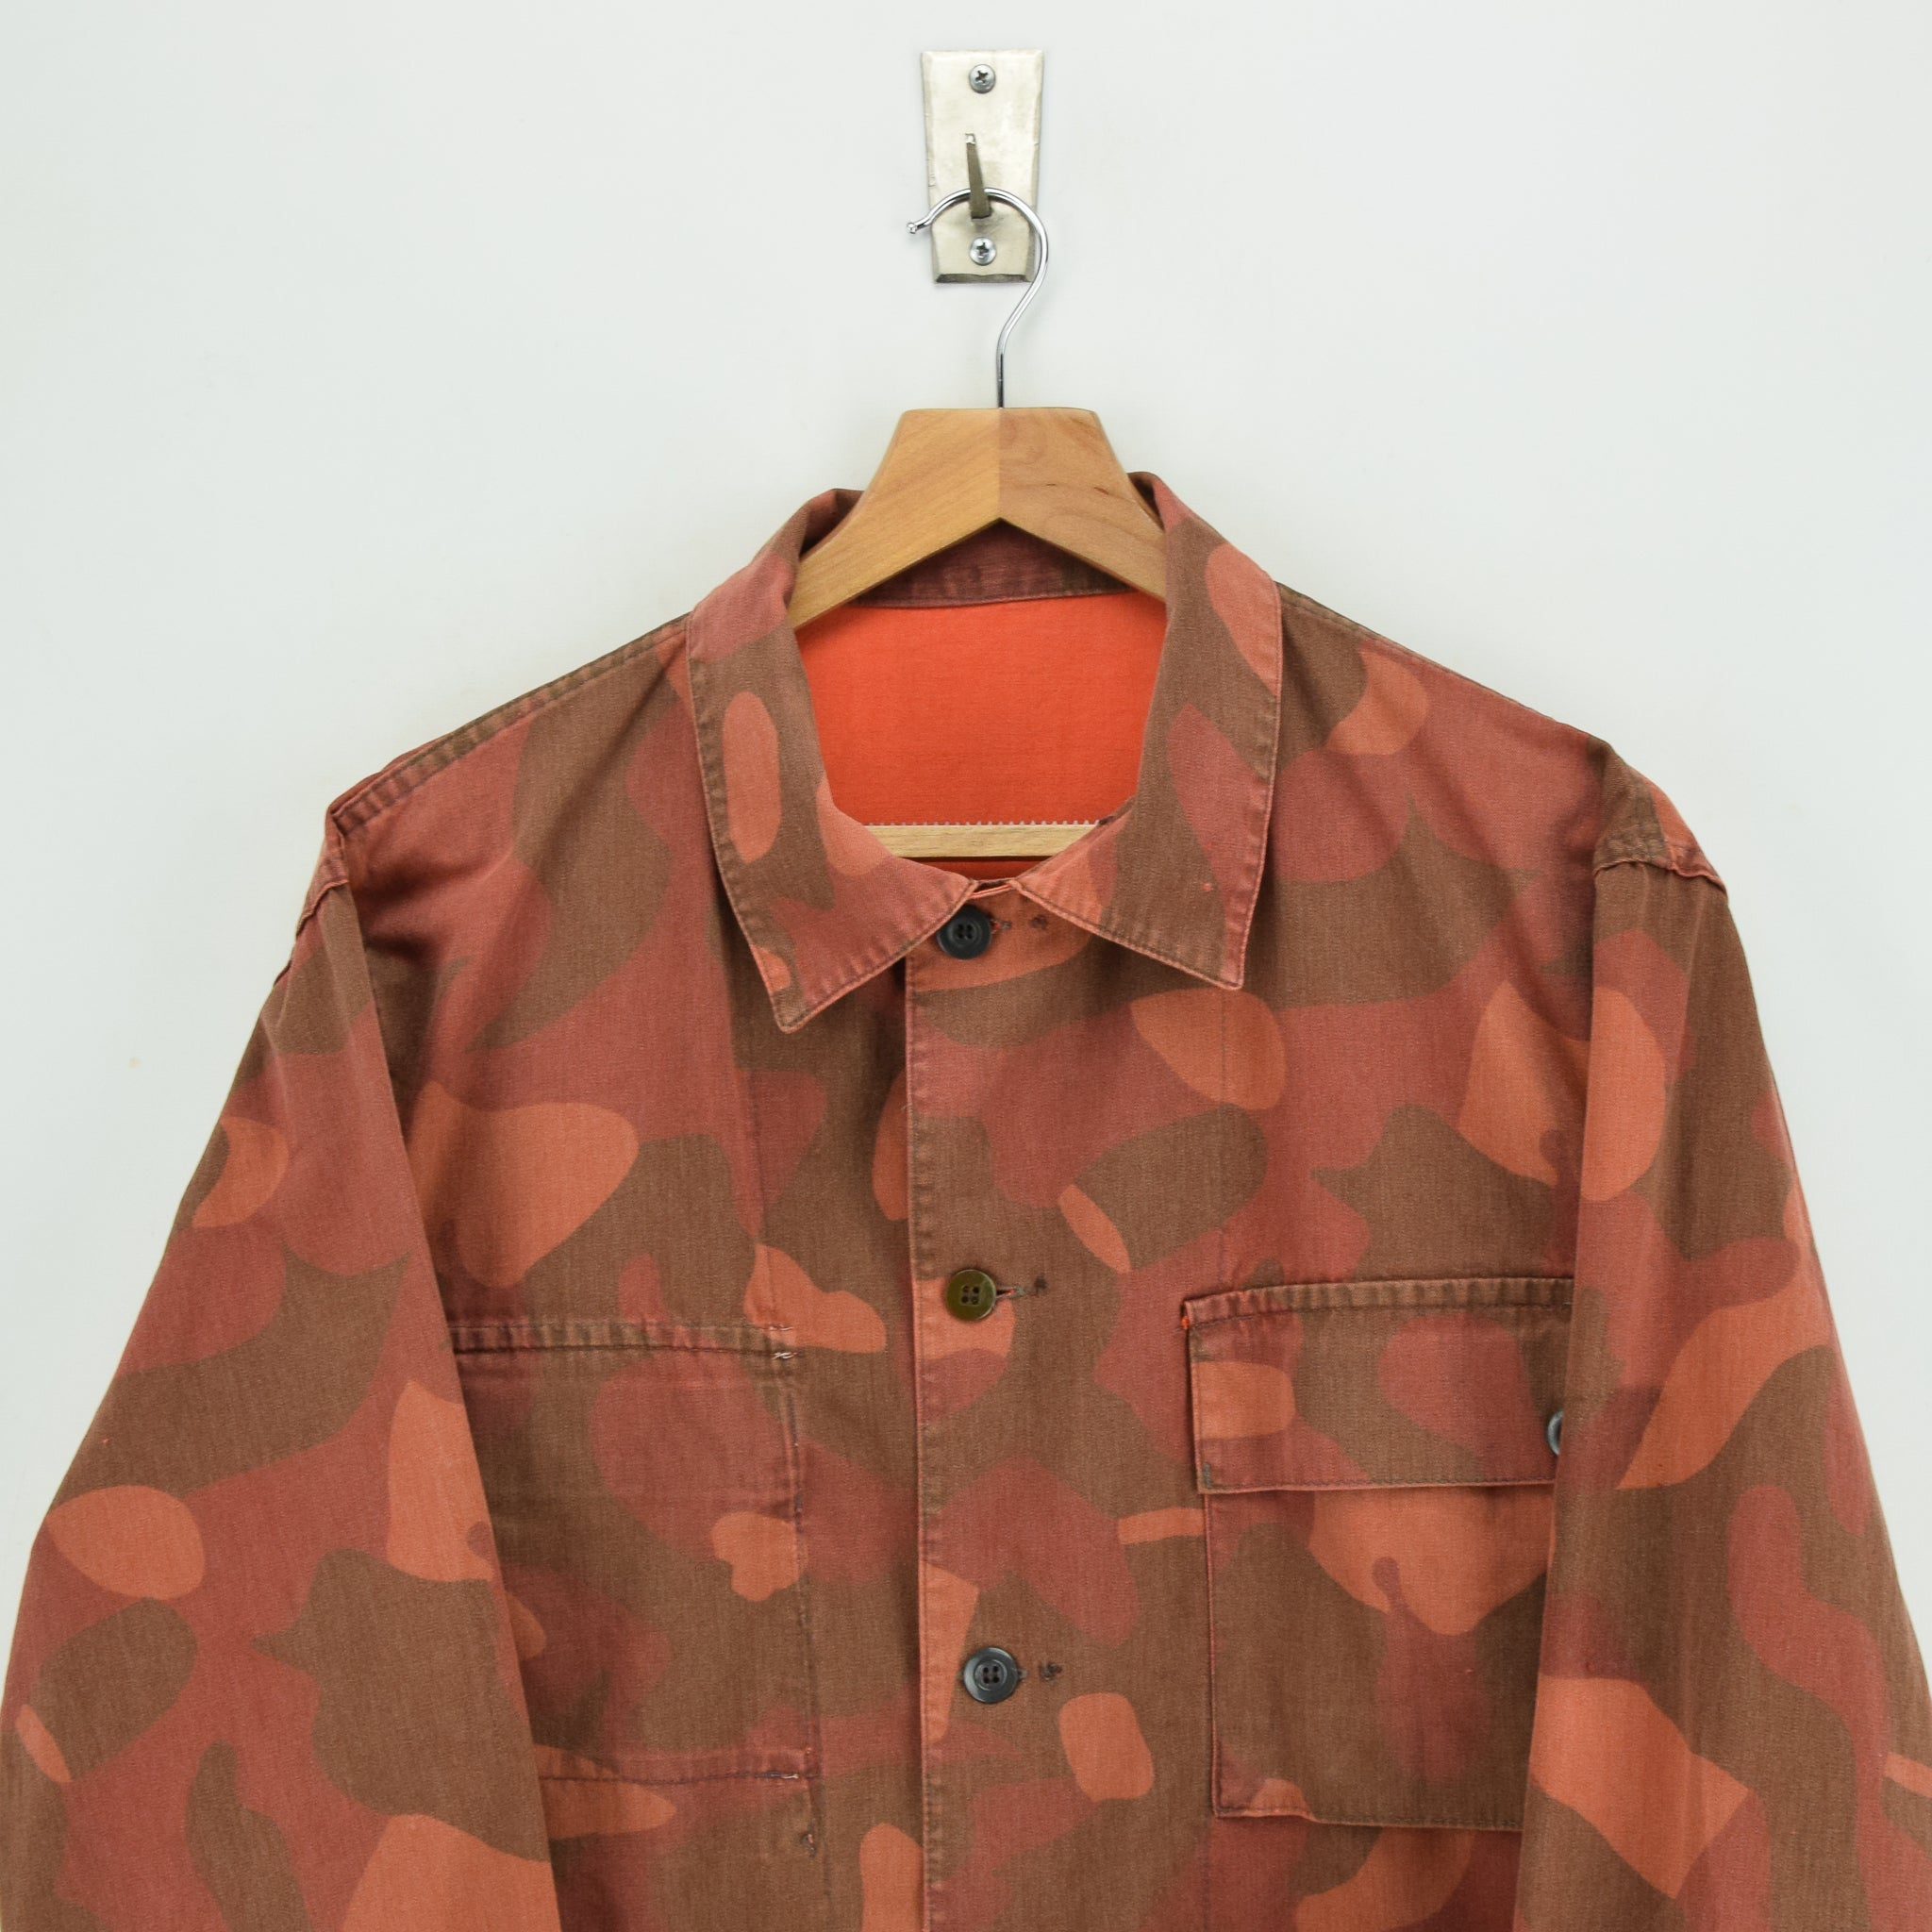 Vintage 80s Military Finnish Army Orange Overdyed Camo Mountain Field Jacket L chest